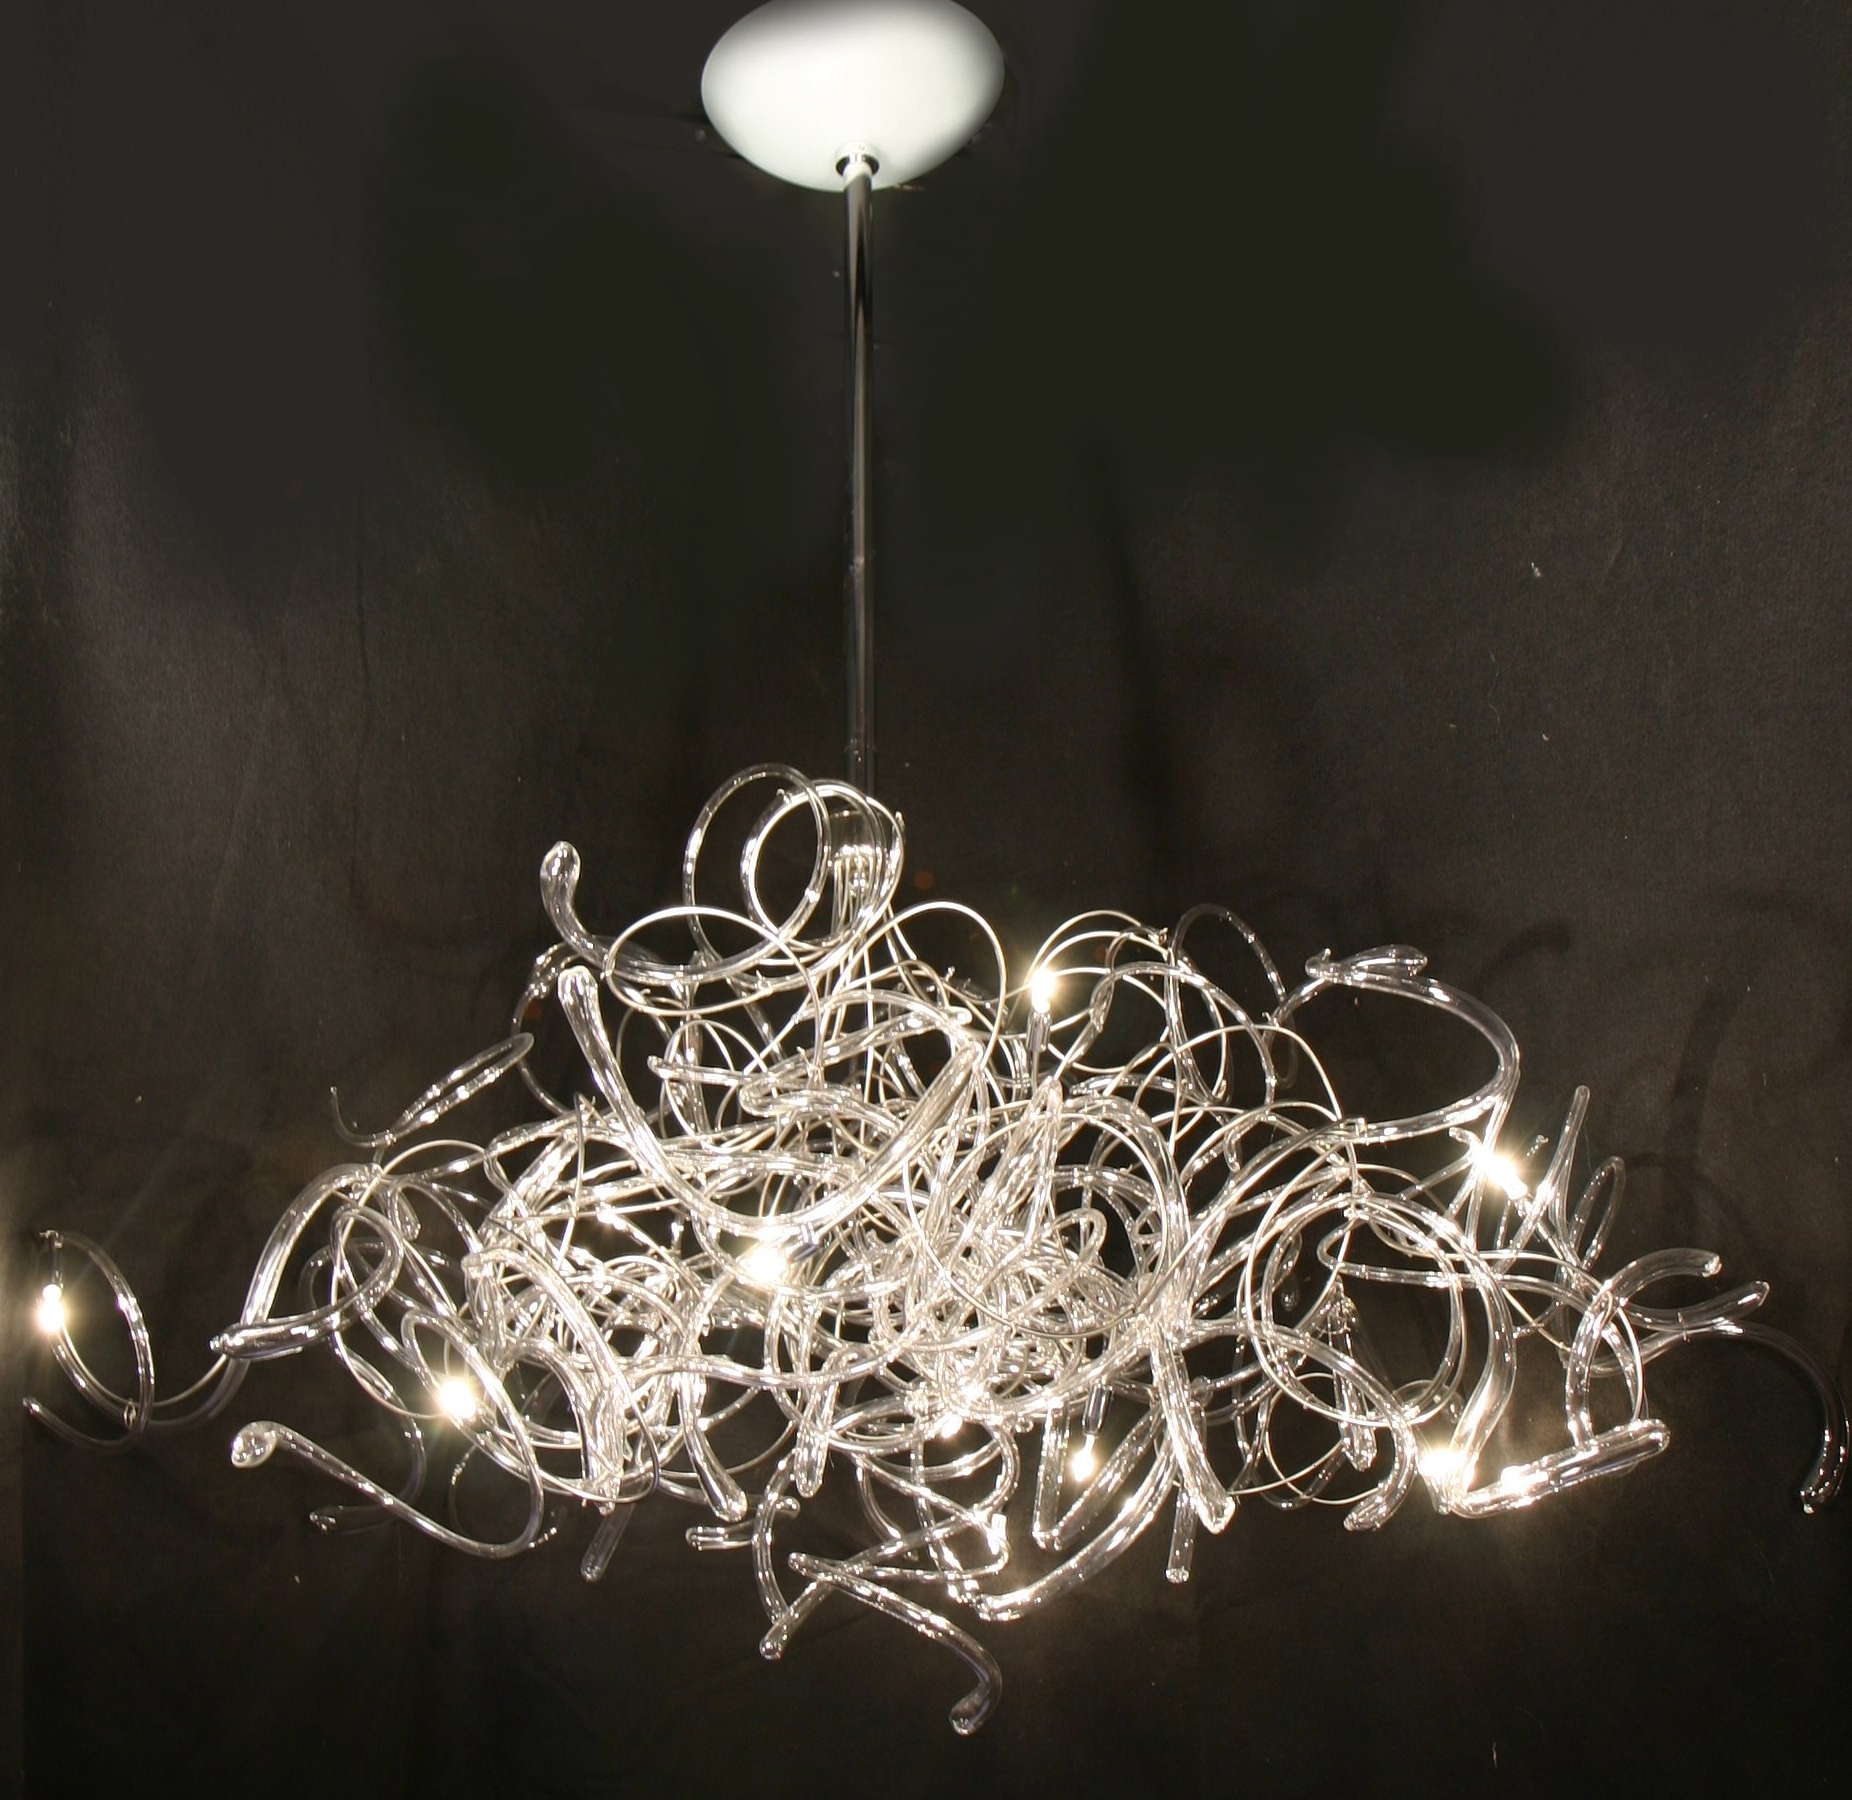 Fashionable Ultra Modern Chandeliers – Chandelier Designs With Regard To Modern Light Chandelier (View 5 of 15)